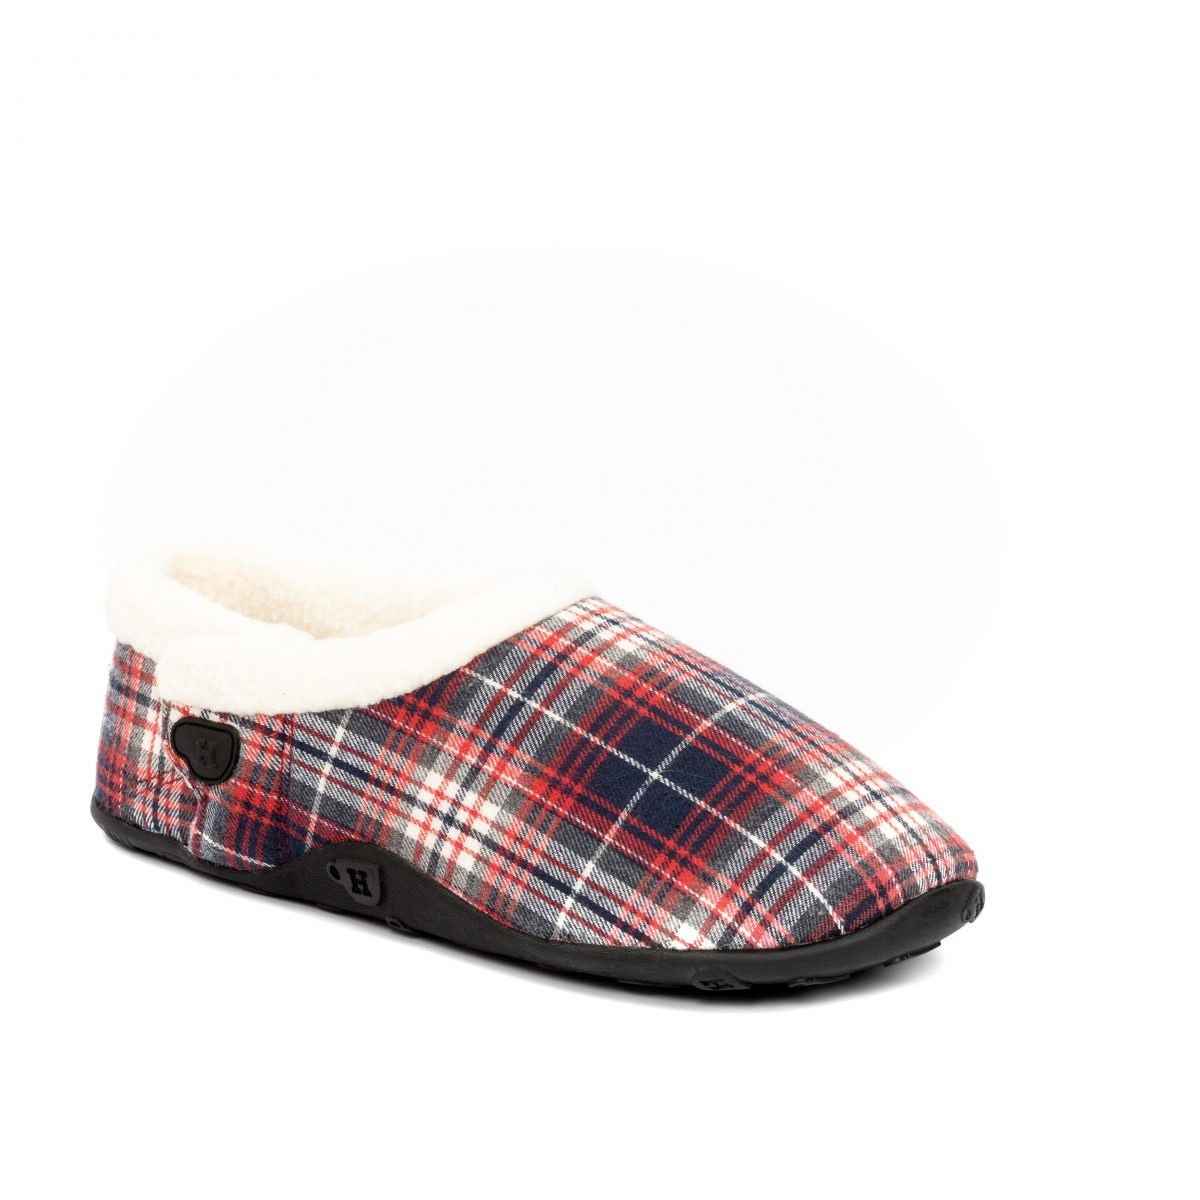 Pete Navy red white check M 1 mr